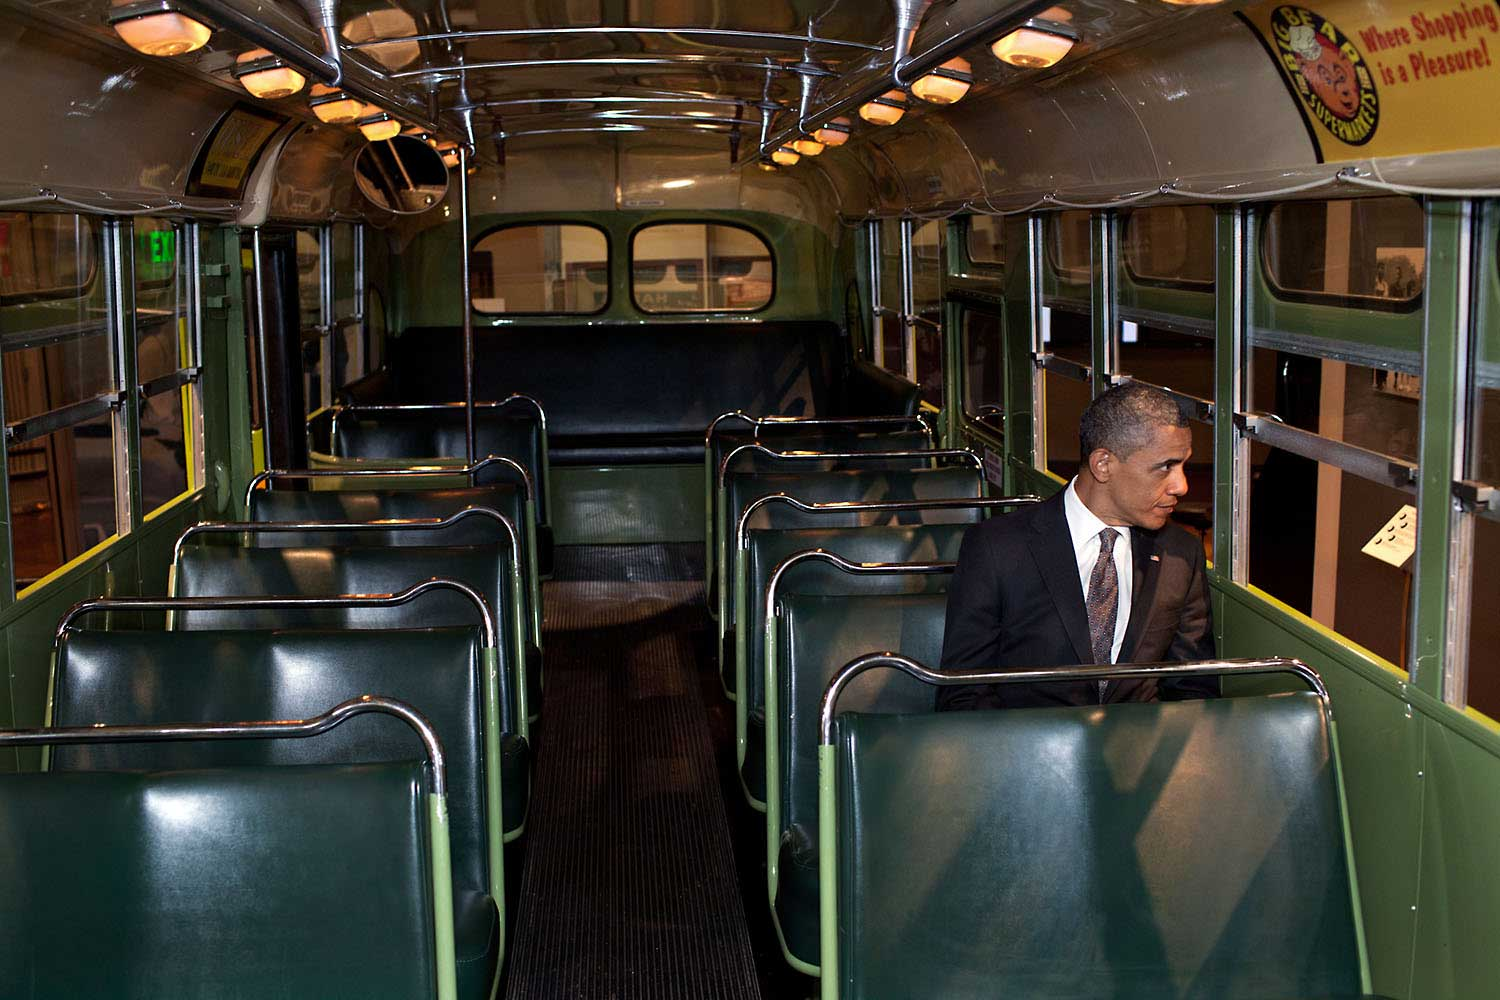 President Obama sits on the famed Rosa Parks bus at the Henry Ford Museum following an event in Dearborn, Mich., April 18, 2012.